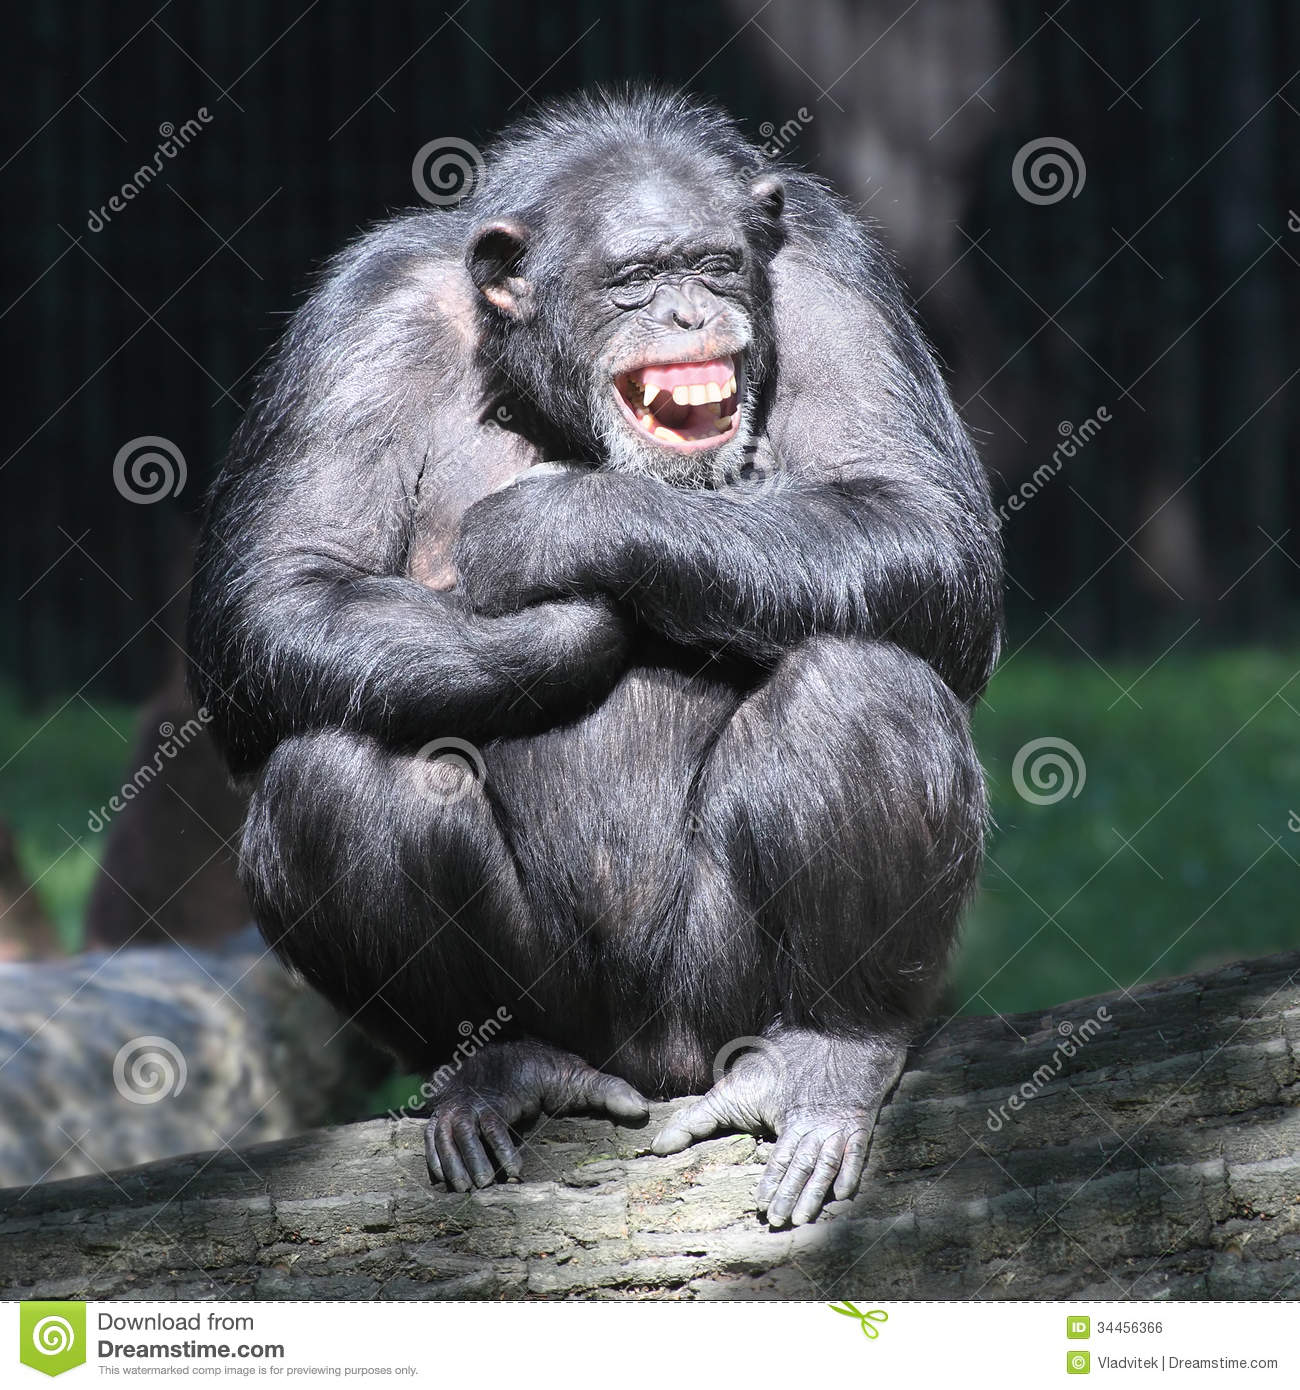 The Chimpanzee. Royalty Free Stock Image - Image: 34456366